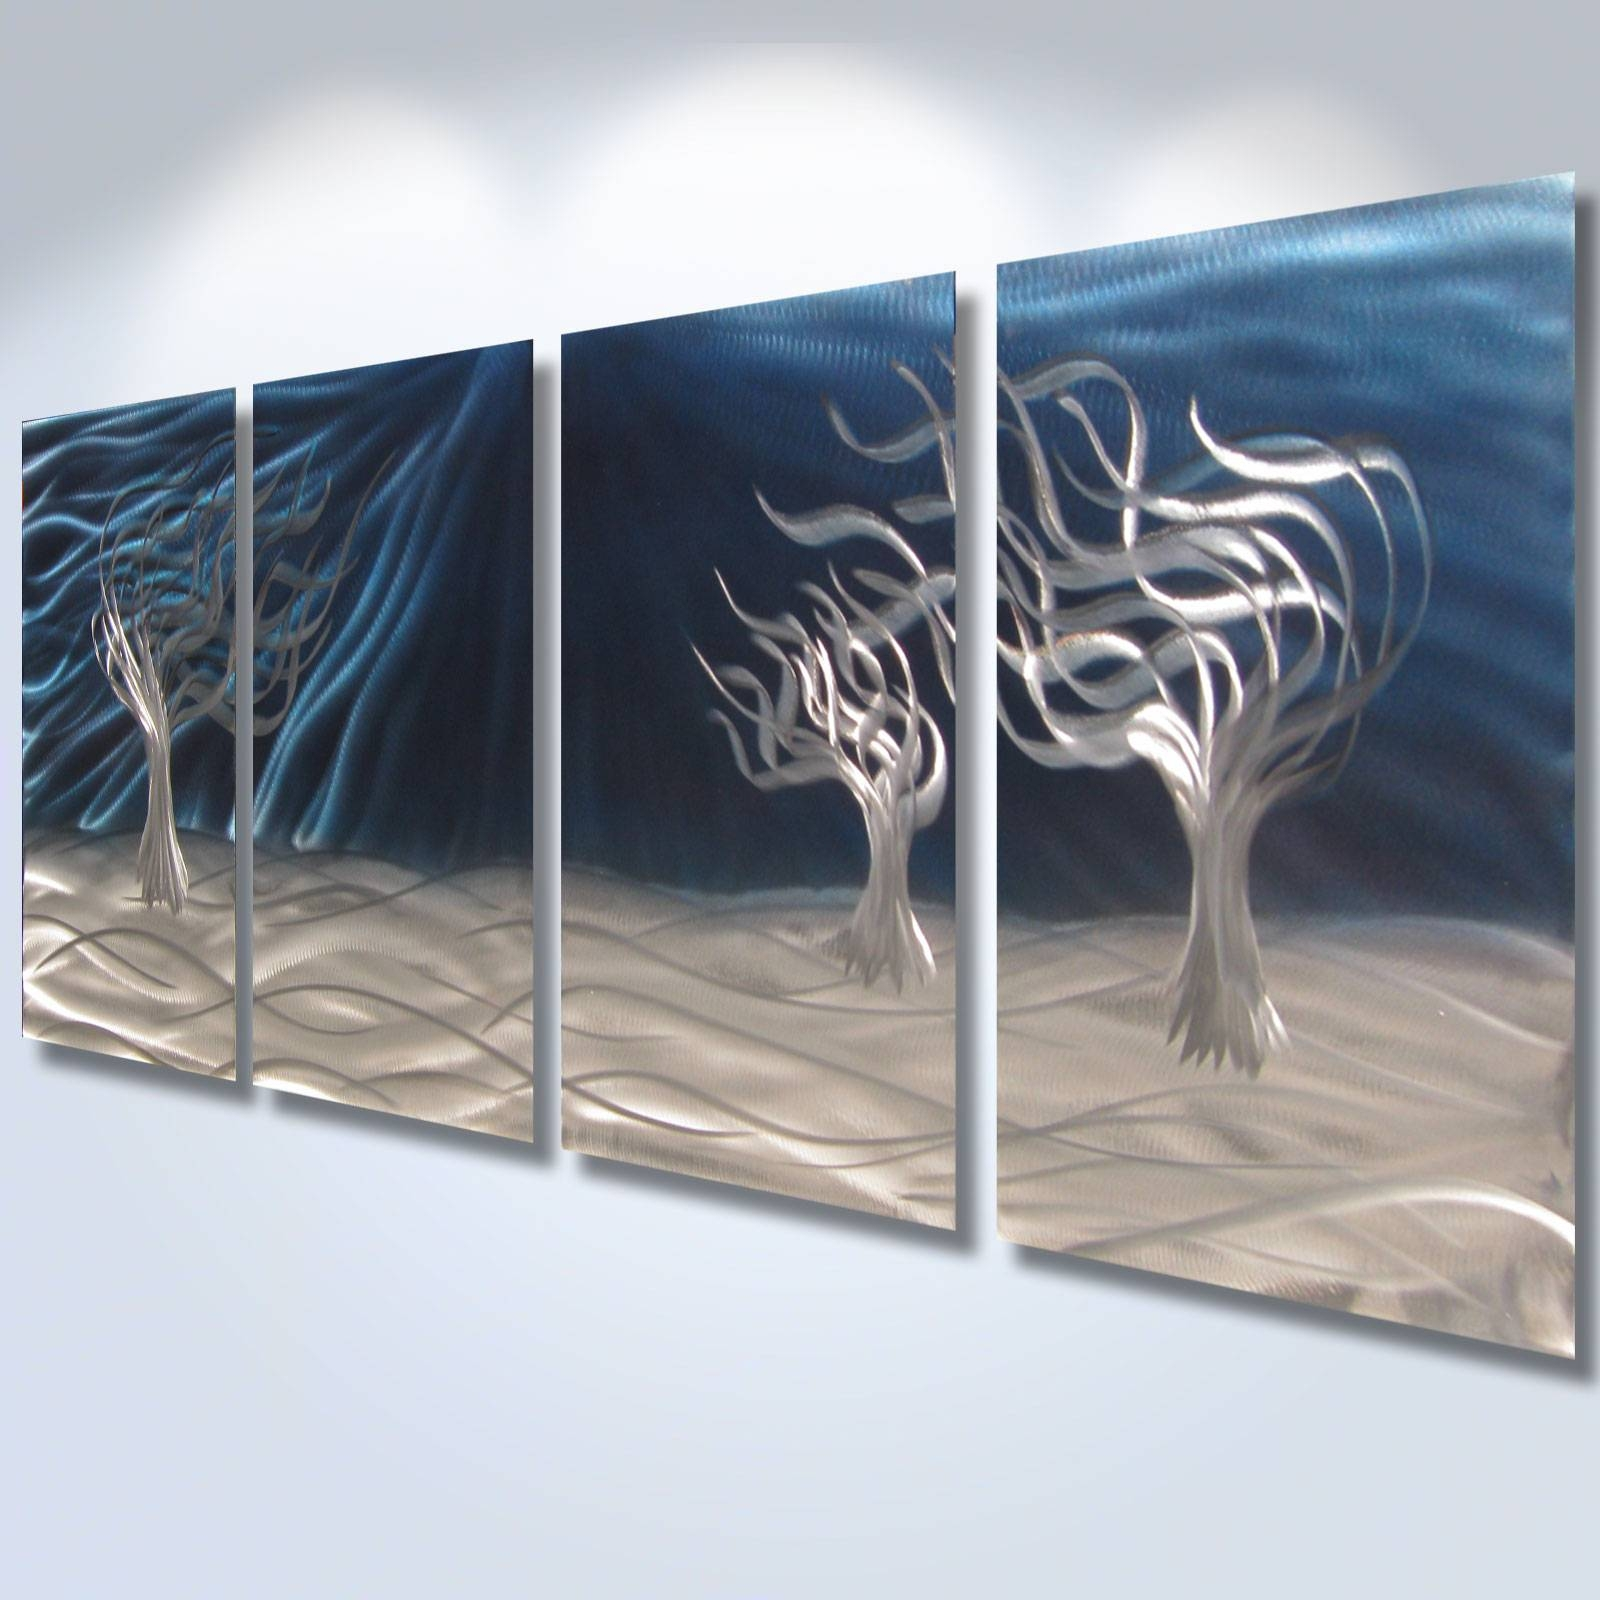 3 trees blue abstract metal wall art contemporary modern decor throughout most recent blue metal